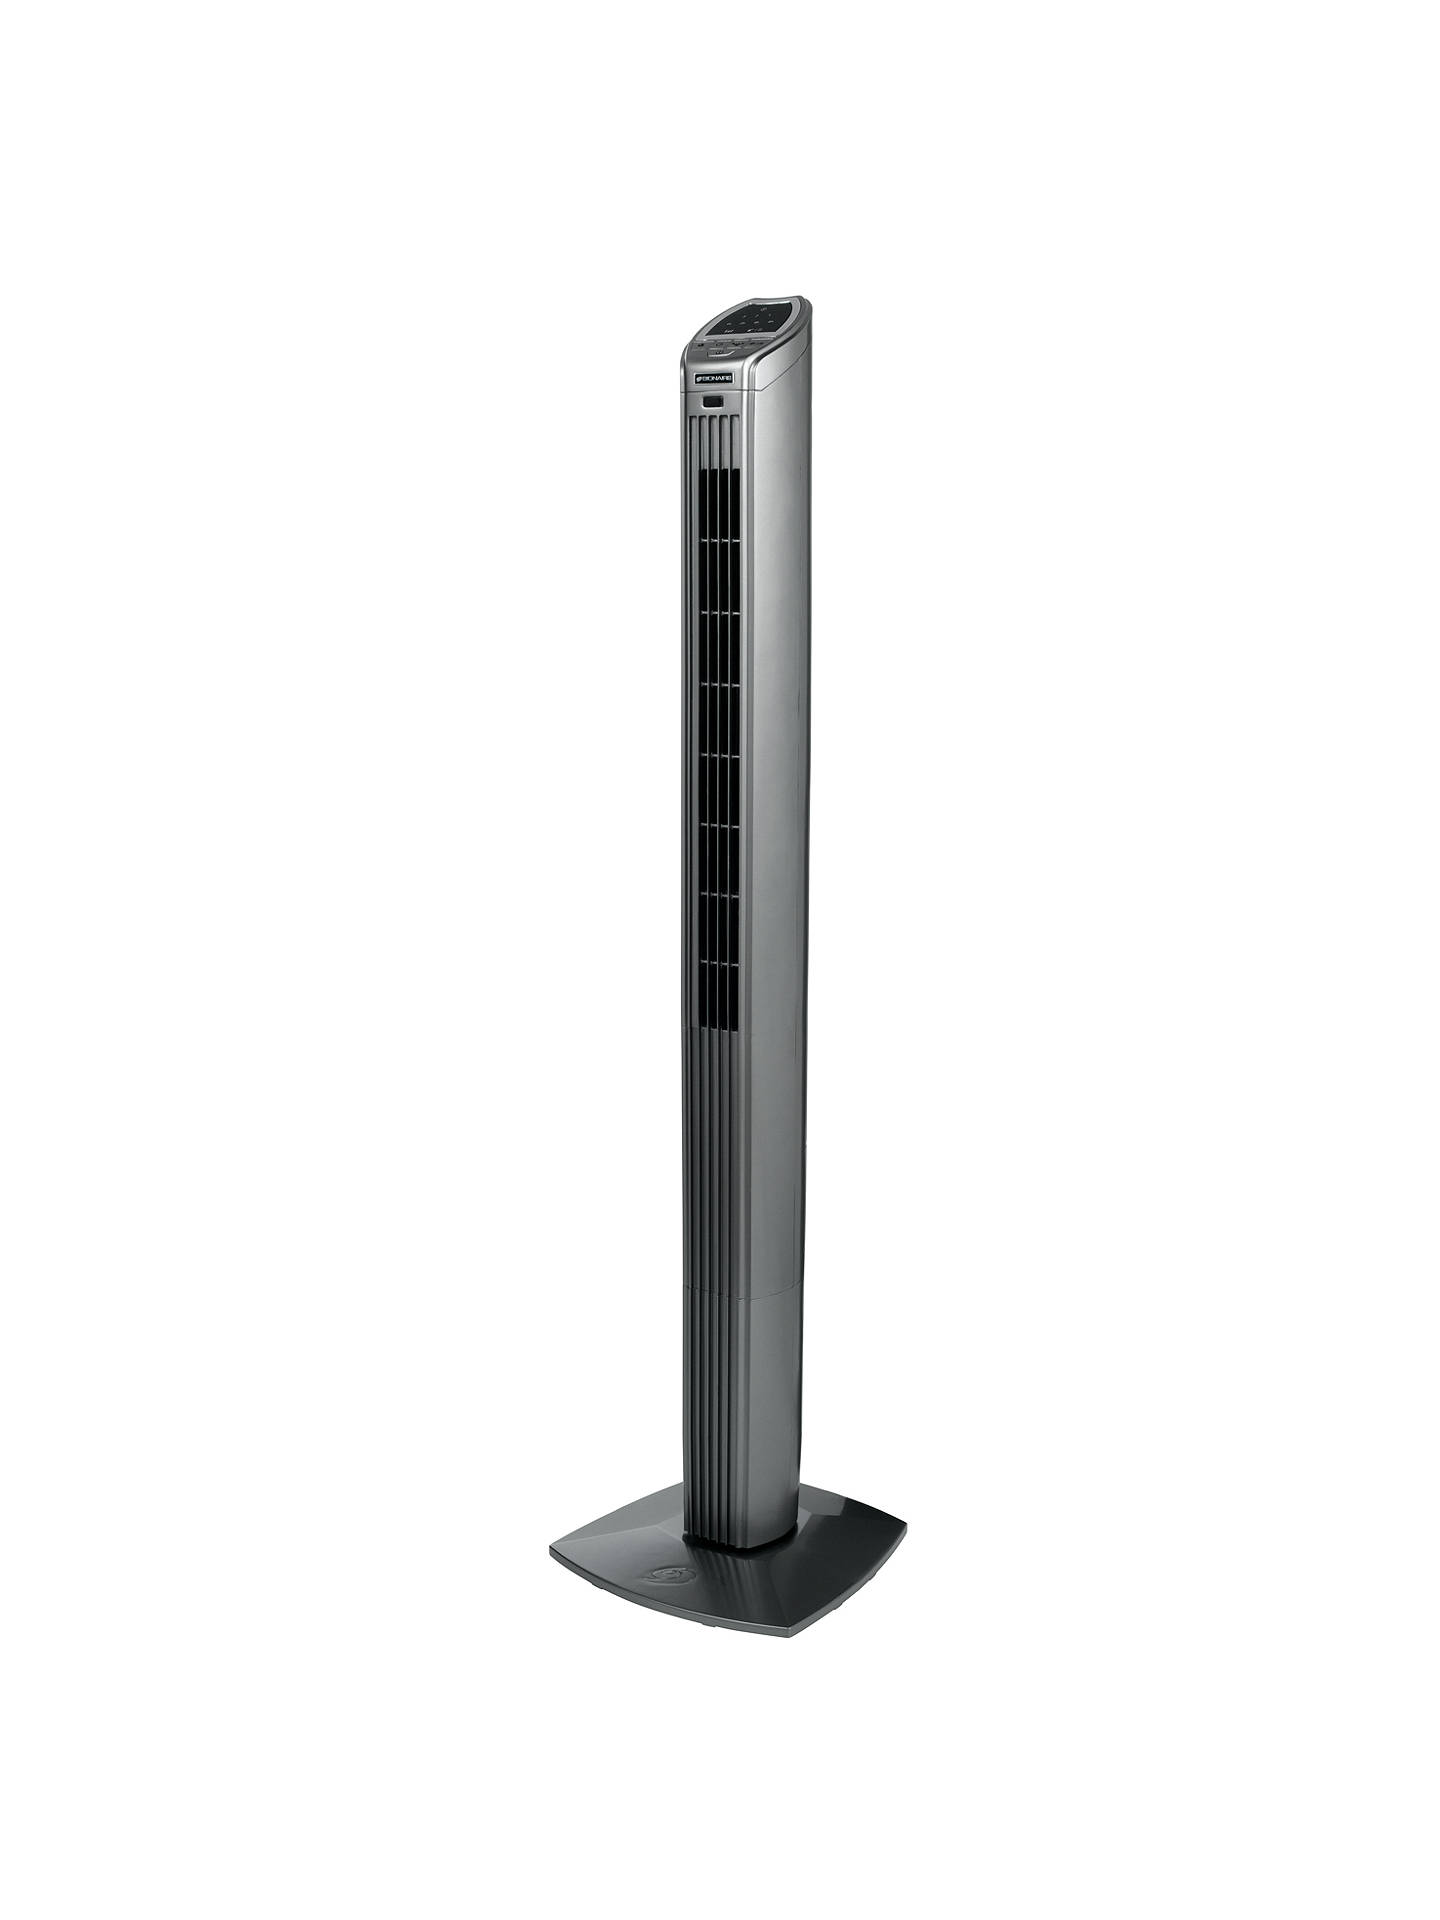 Holmes Bionaire Bt150r Iuk Tower Fan With Remote Control